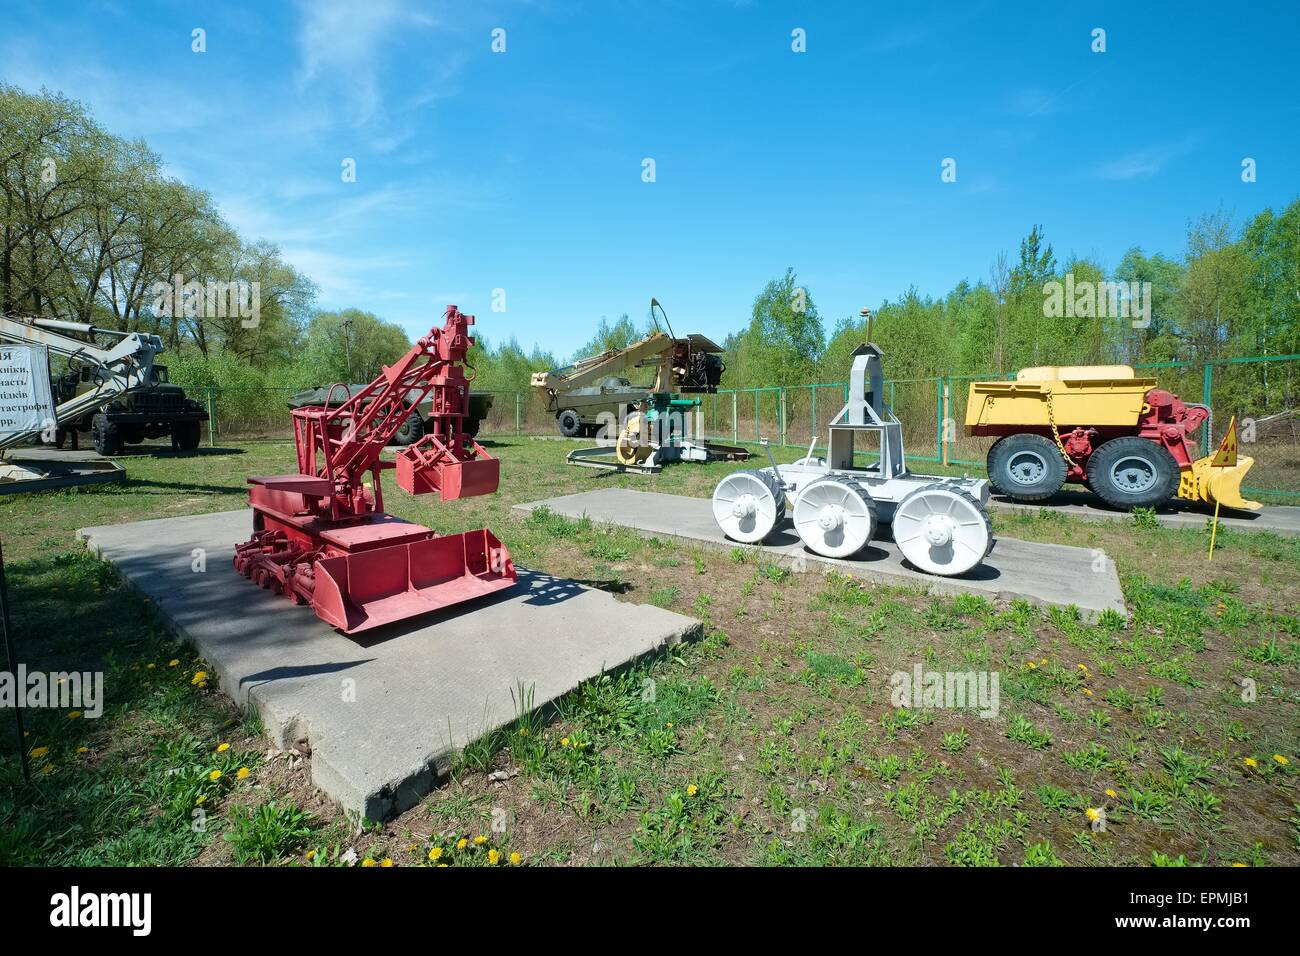 City of Chernobyl Ukraine Military machines - Stock Image